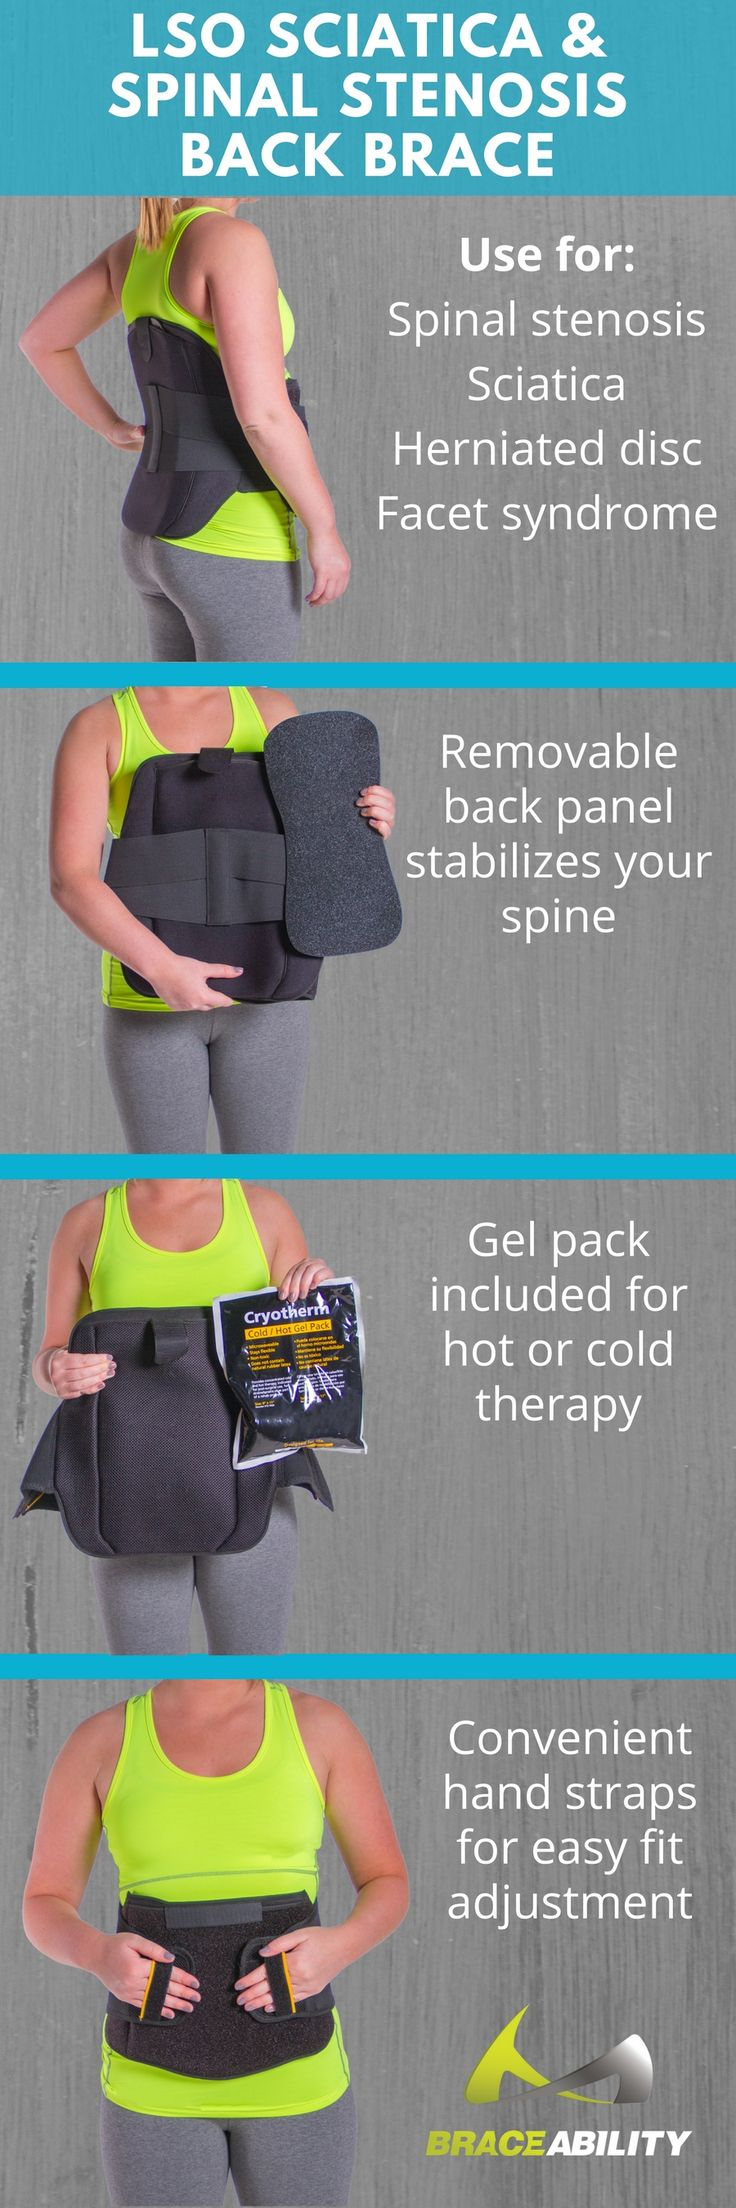 This disc unloader back brace eases back pain by taking pressure off the lumbar discs and shifting the load to the abdominal region. The heat and ice packs will help with the therapy process making recovery from spinal stenosis even faster!